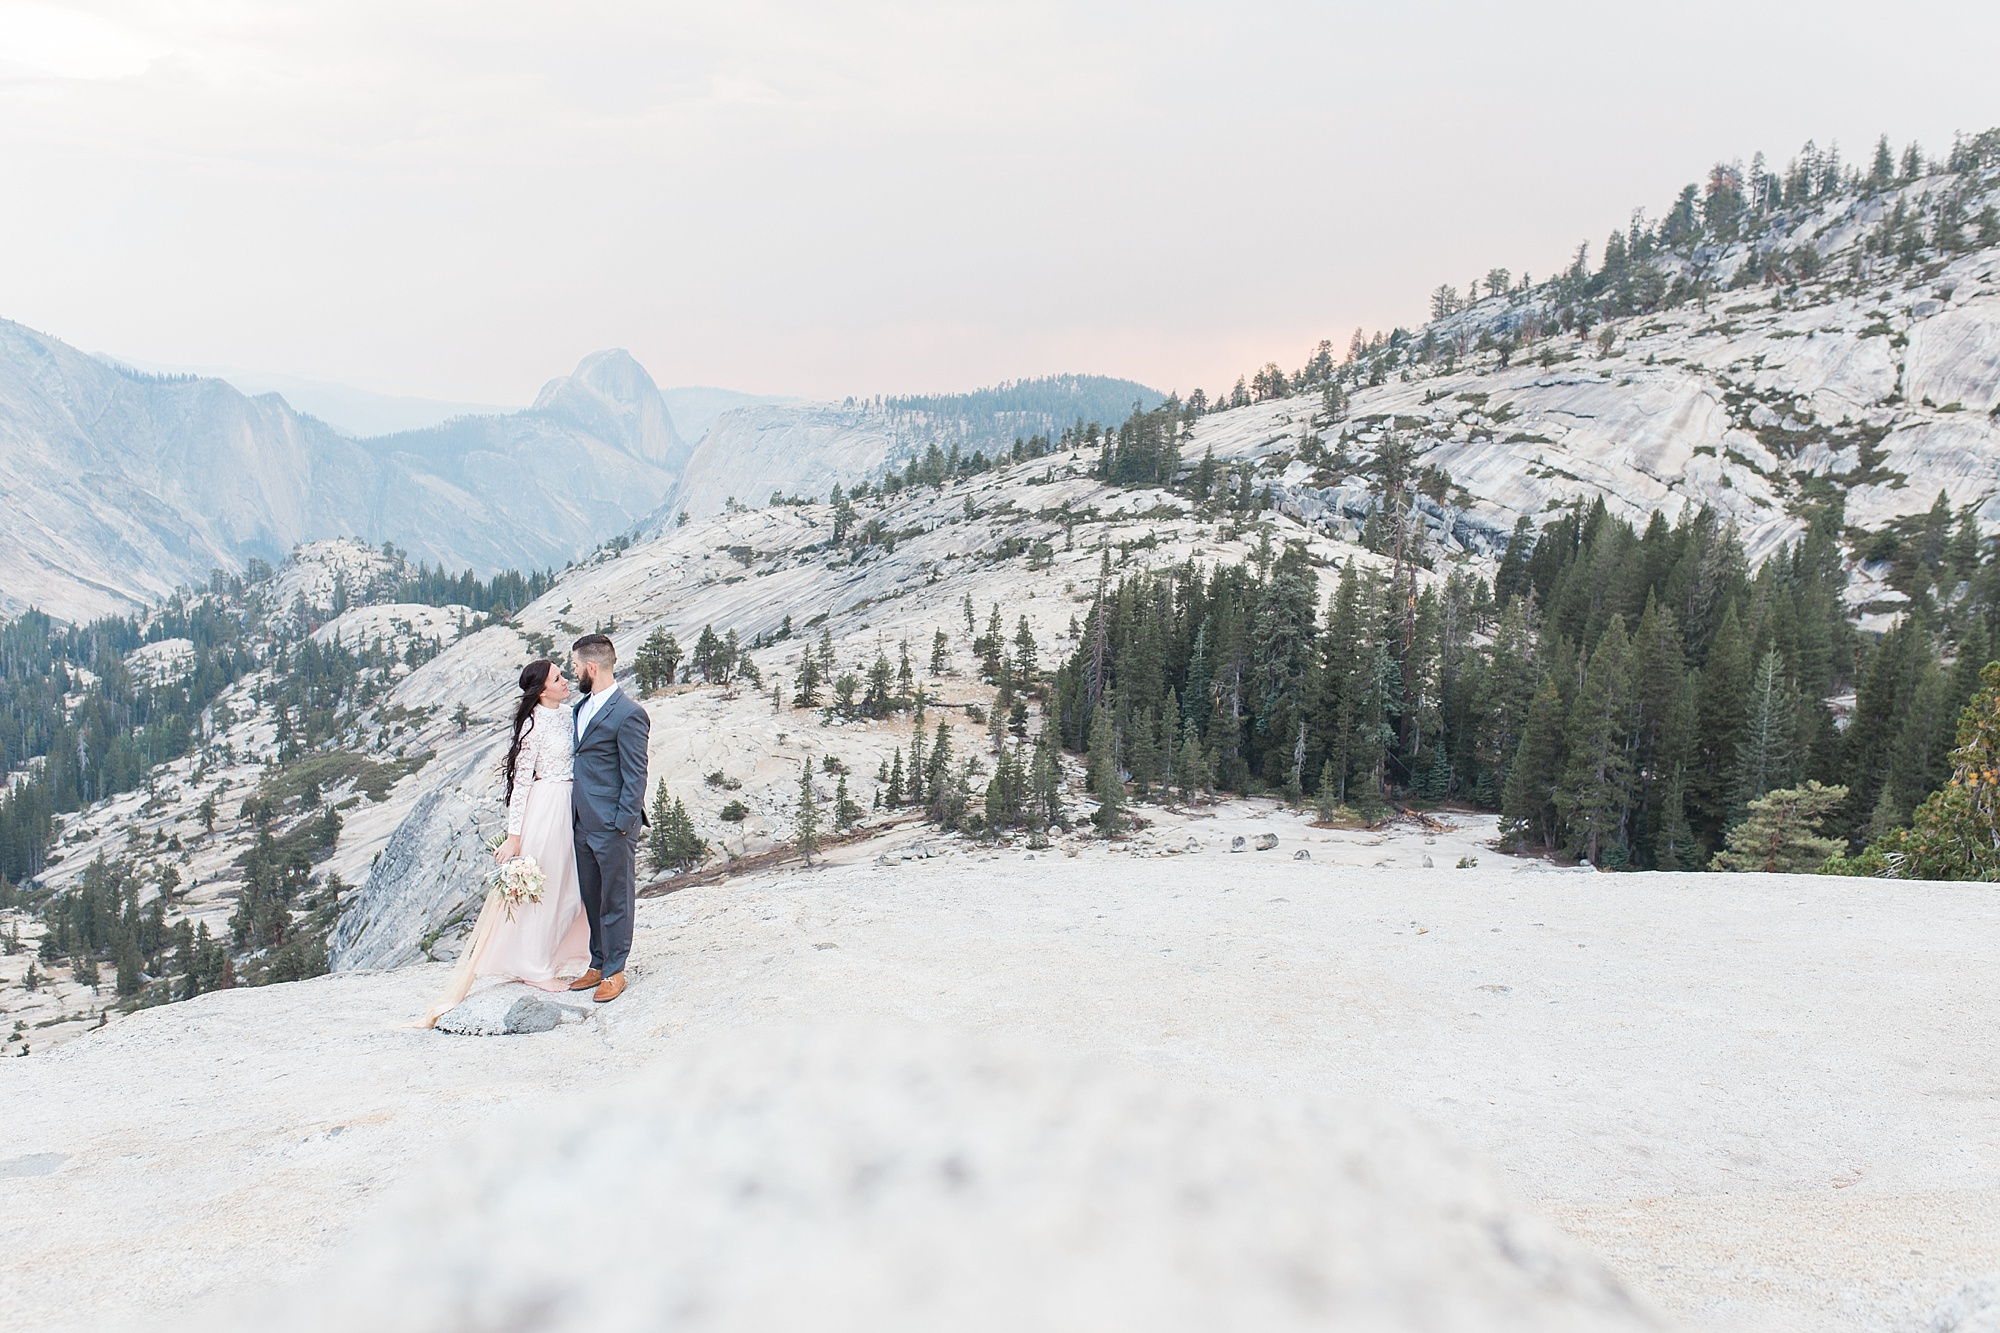 Ashley Baumgartner Photography & Calligraphy Yosemite Vow Renewal featured on 100 Layer Cake_0001.jpg